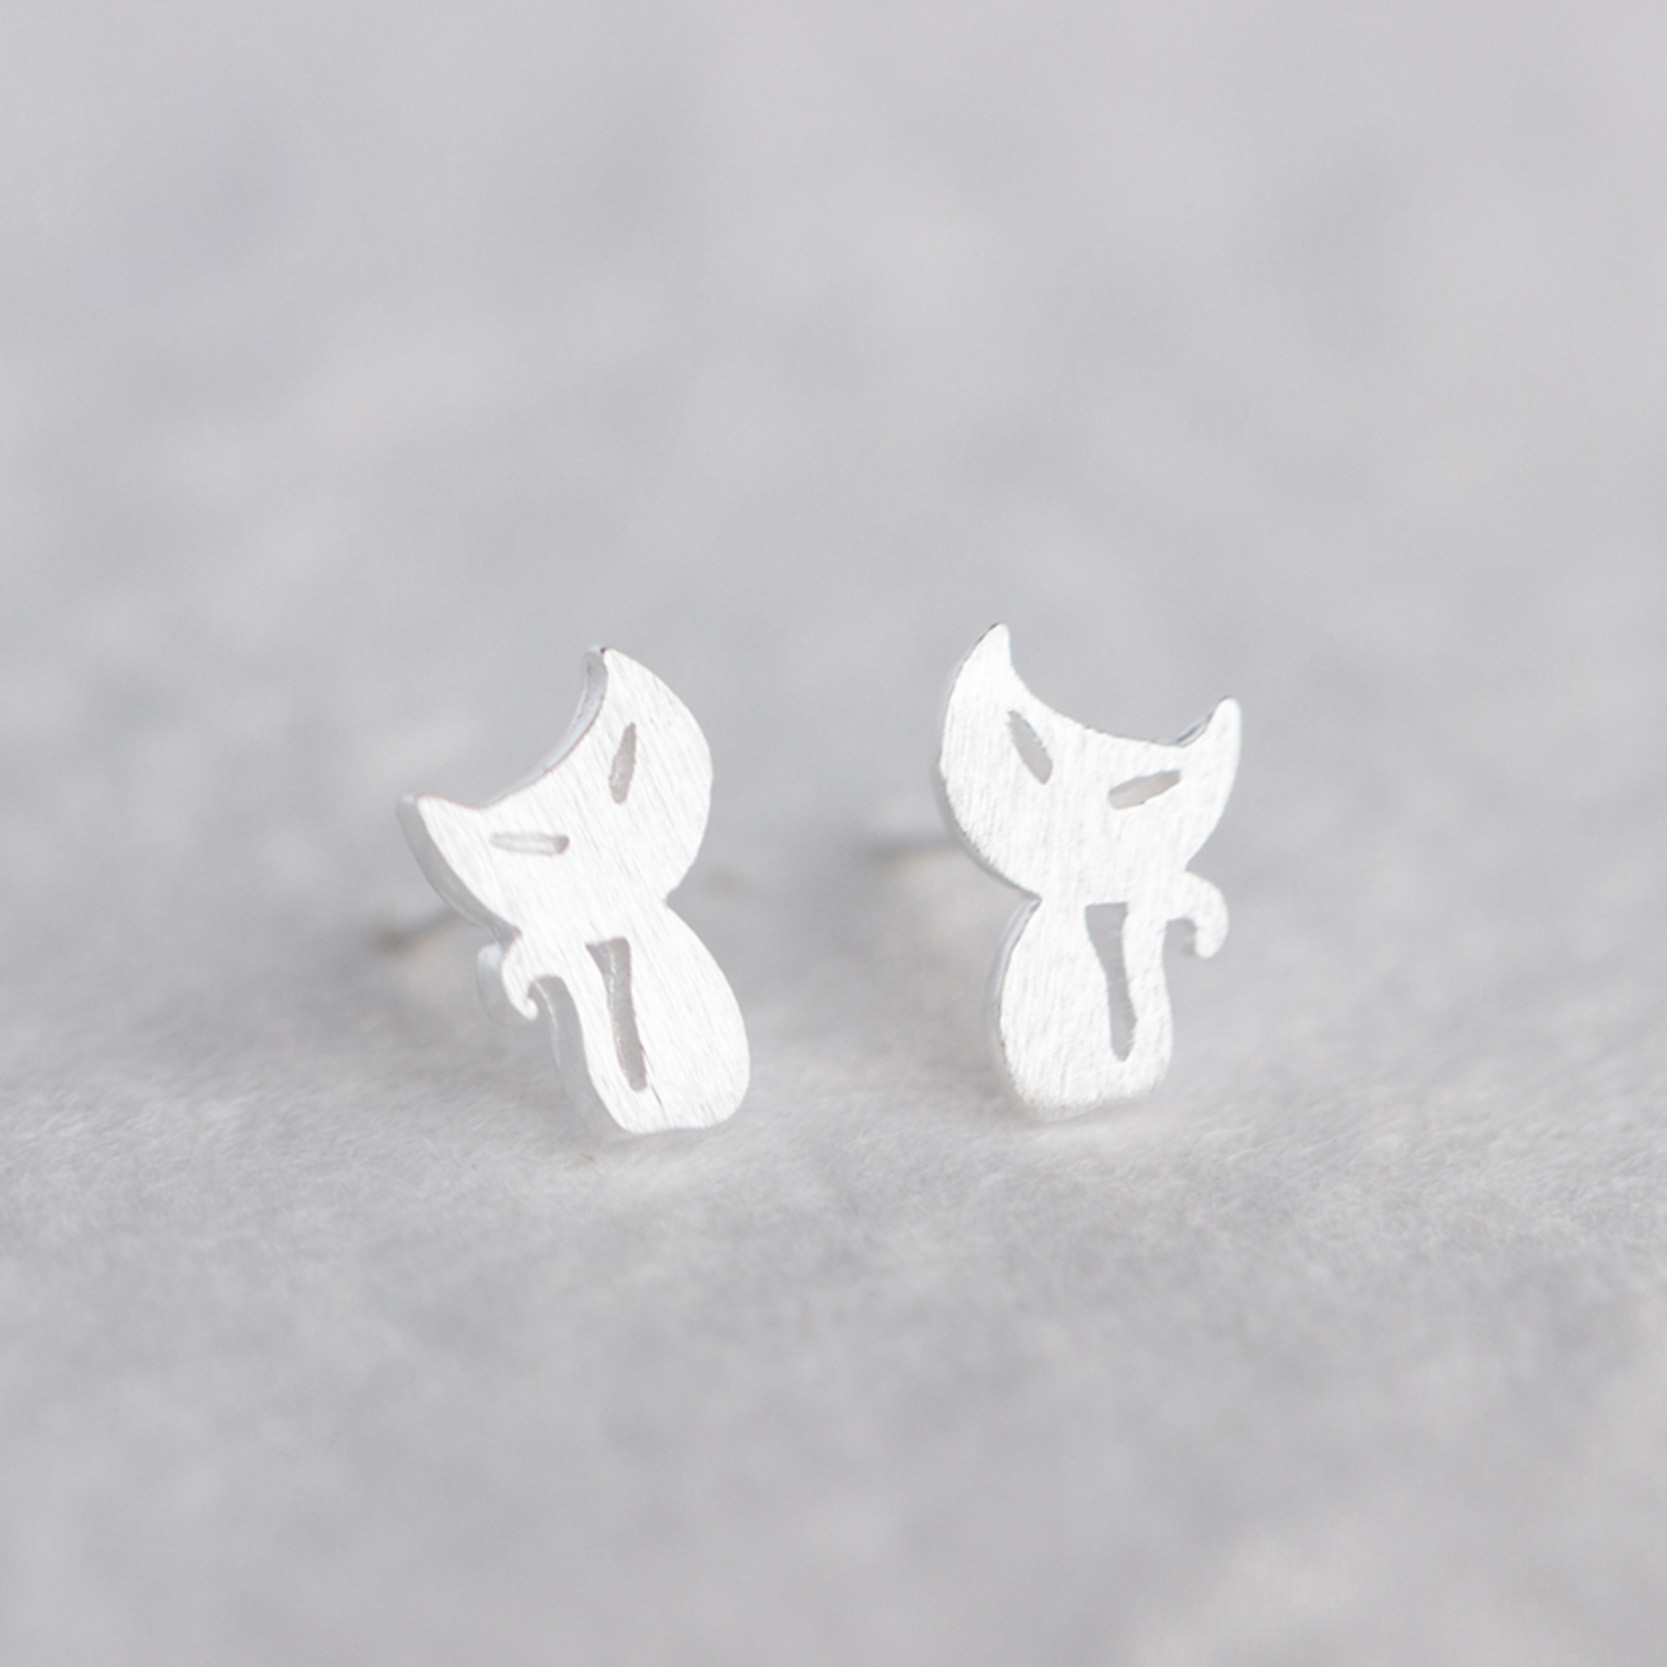 New Brand Pendientes Mujer Silver Plated Wire Drawing Stud Earrings Charm Small Kitty Ear Earring Friendship Fine Jewelry(China (Mainland))